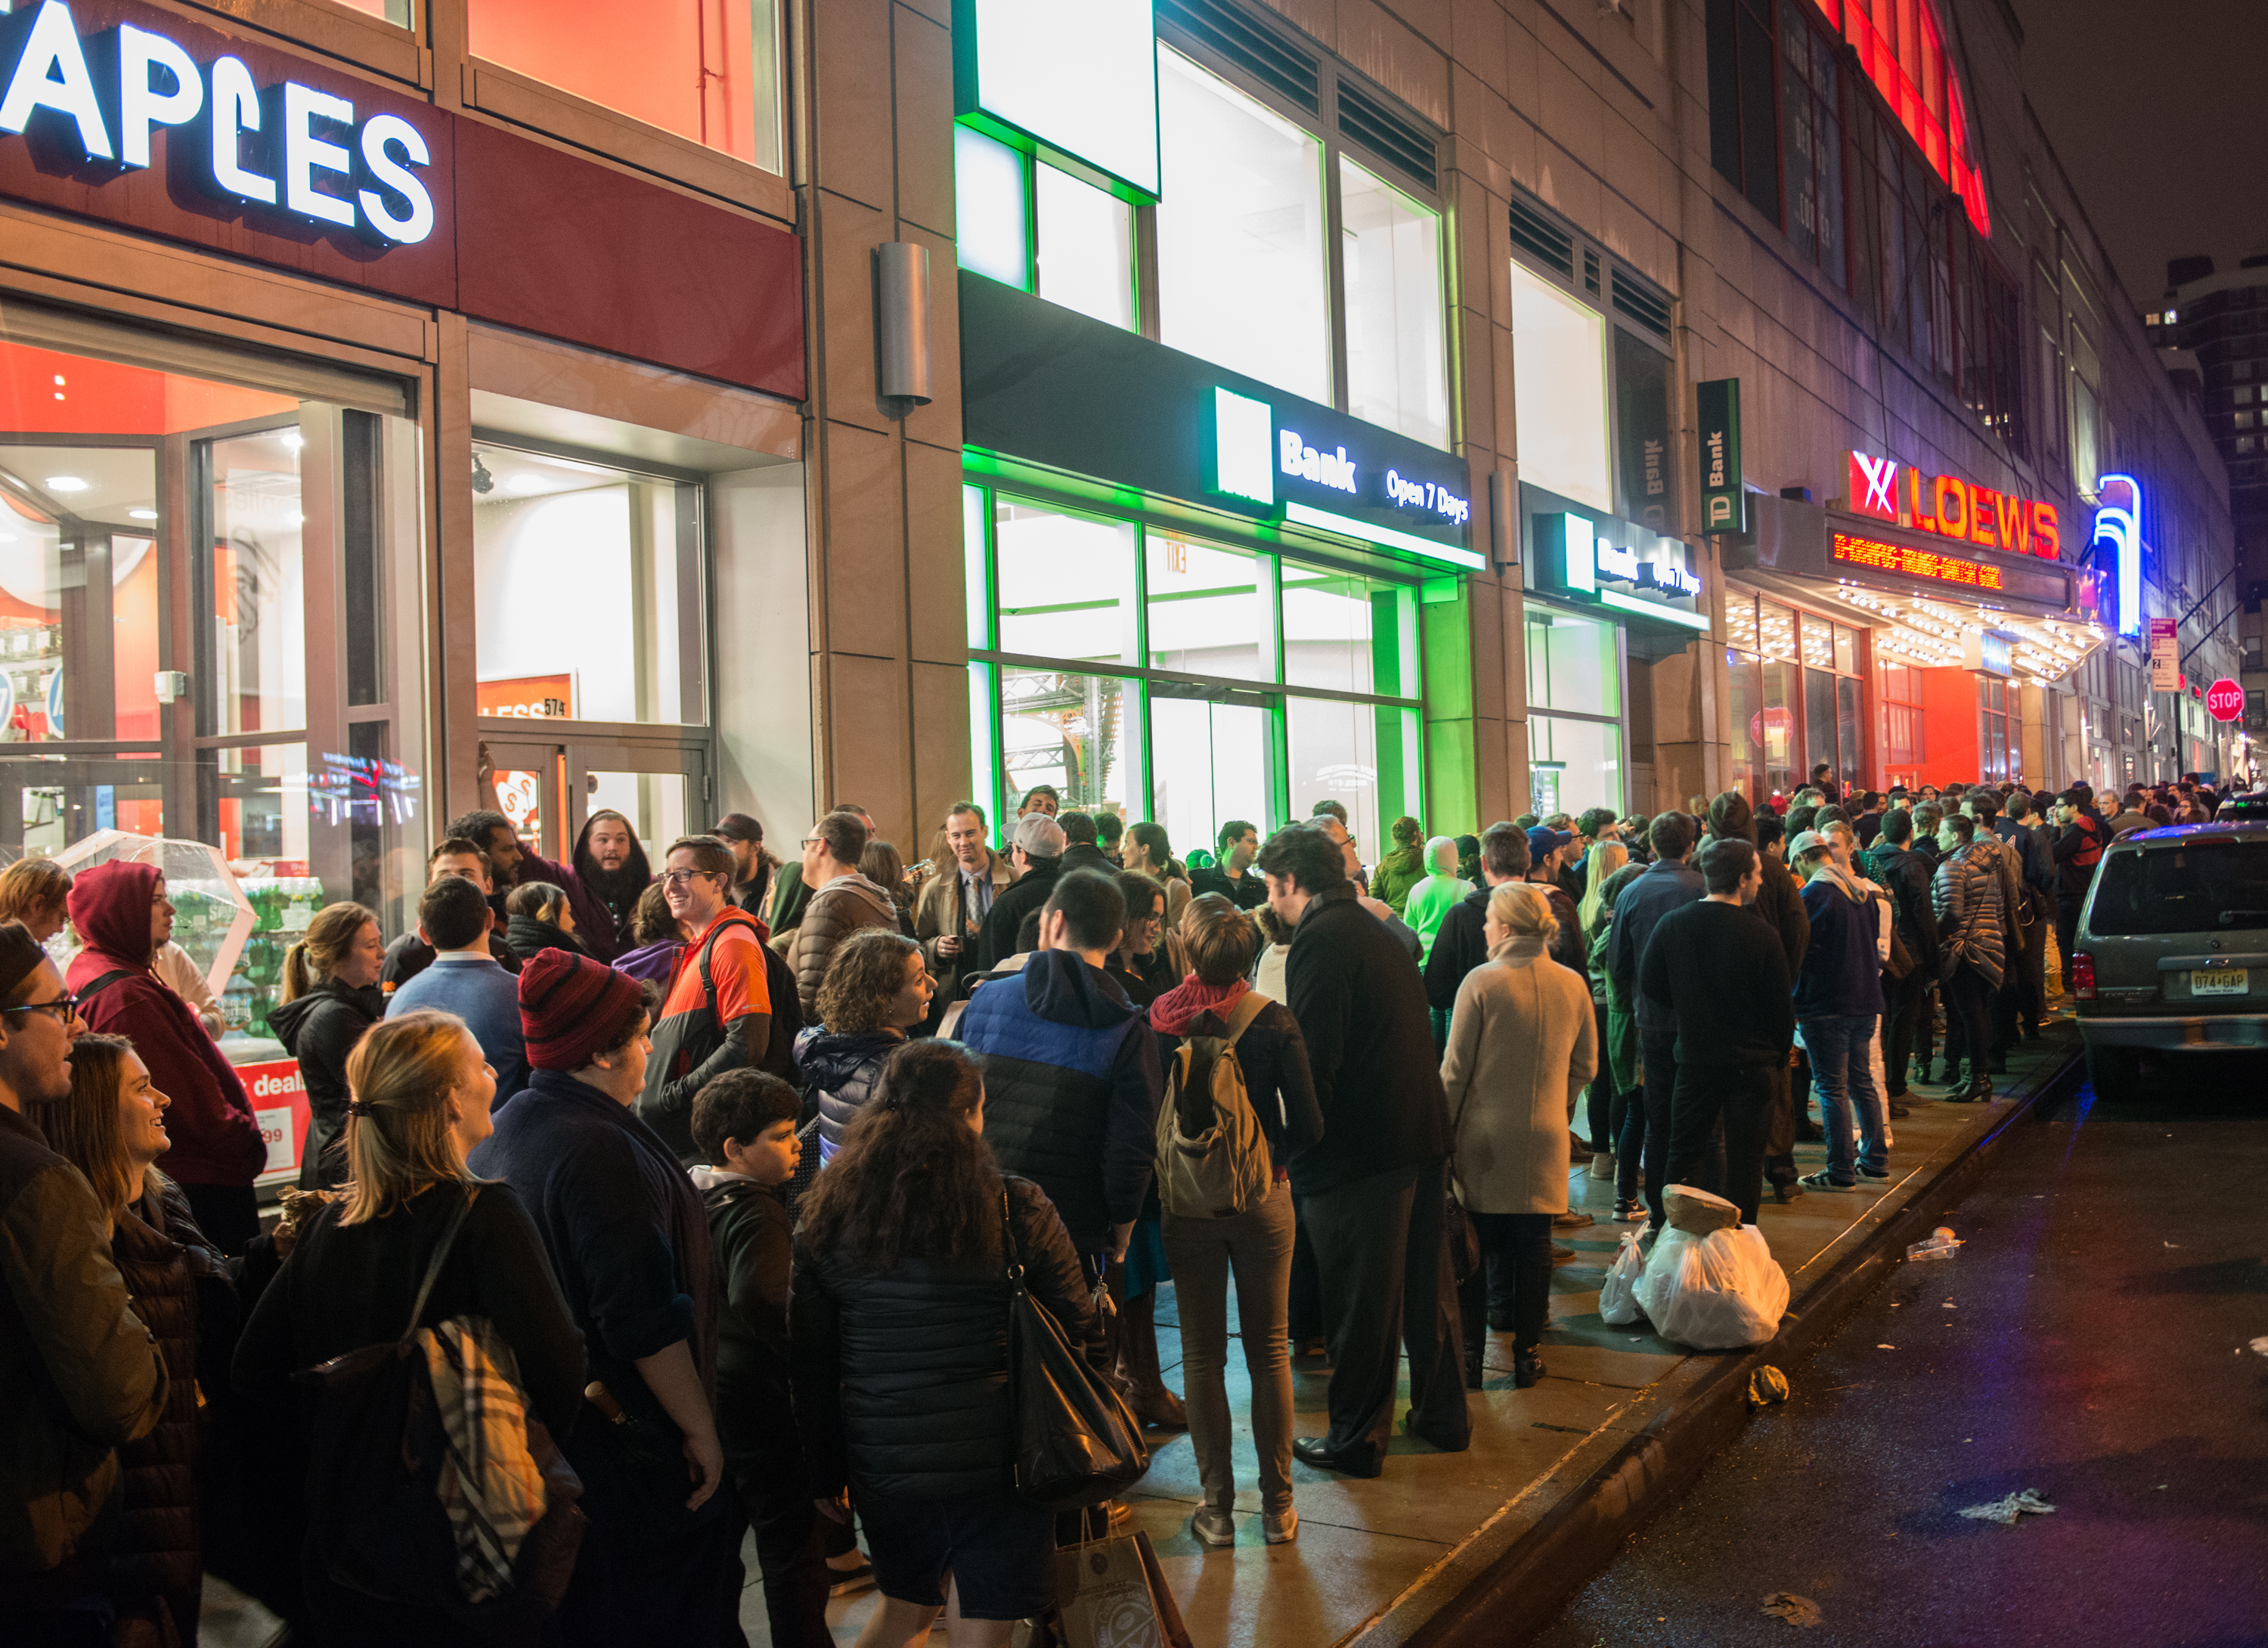 """Fans Line Up To Watch """"Star Wars: The Force Awakens"""" In New York City"""